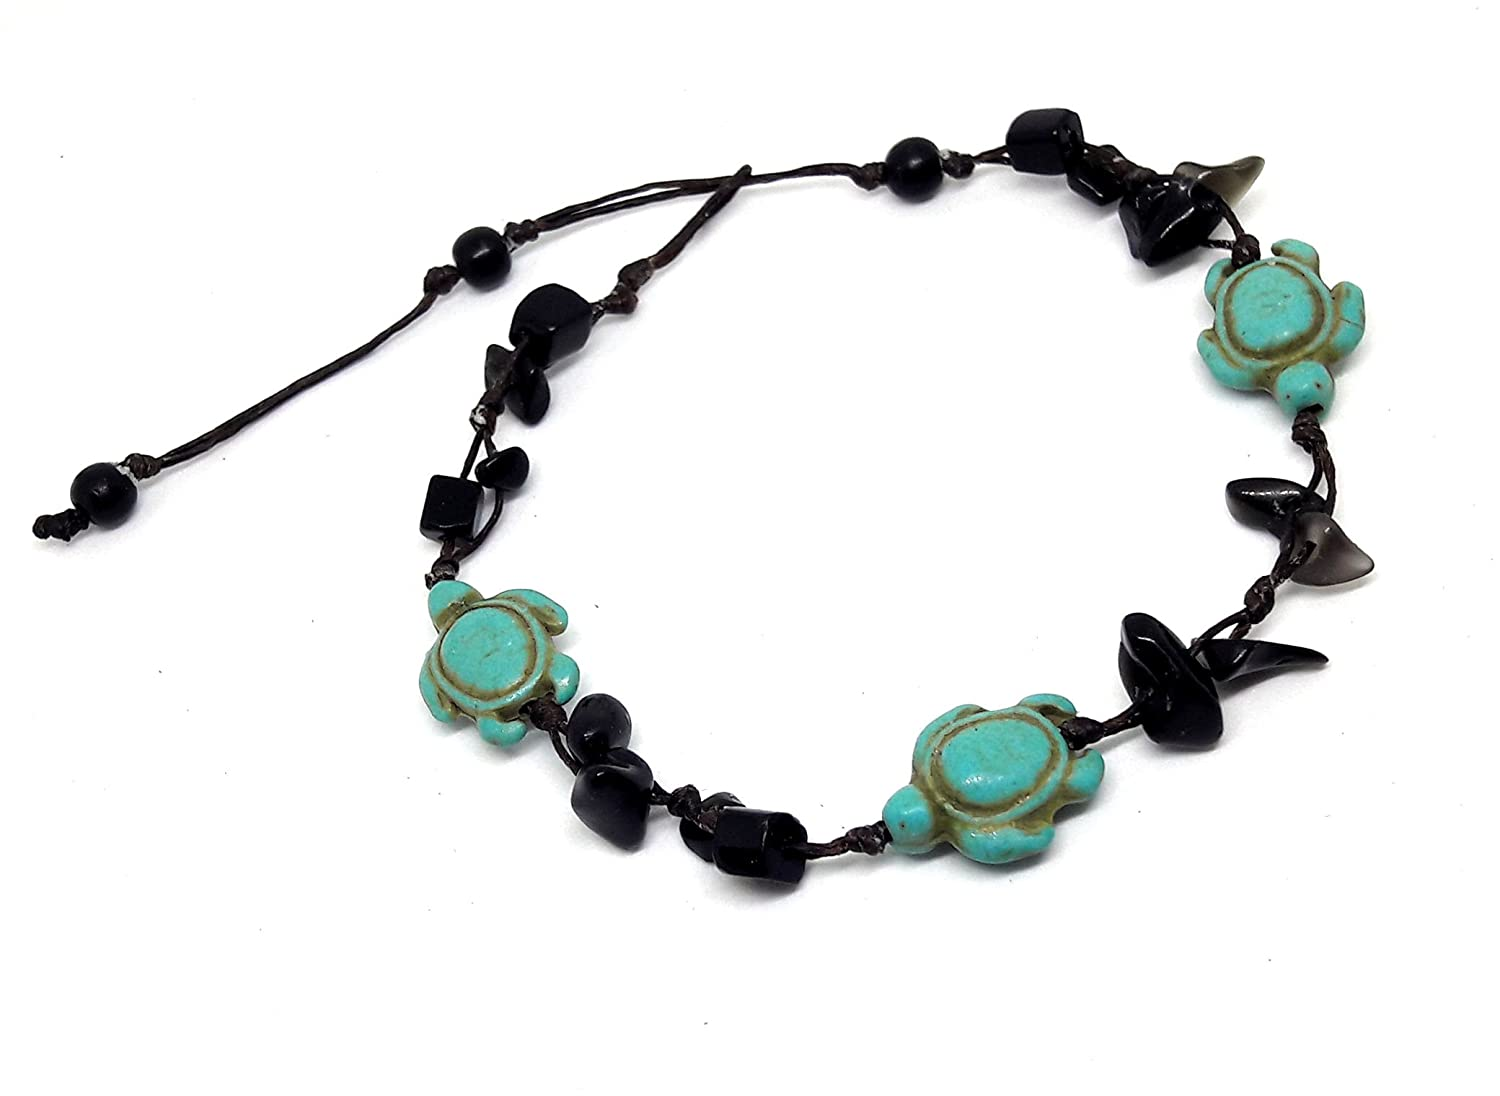 Turtle Blue Turquoise Black Onyx Color Bead Anklet or Bracelet Beautiful 26 cm.Handmade for Women Teens and Girls